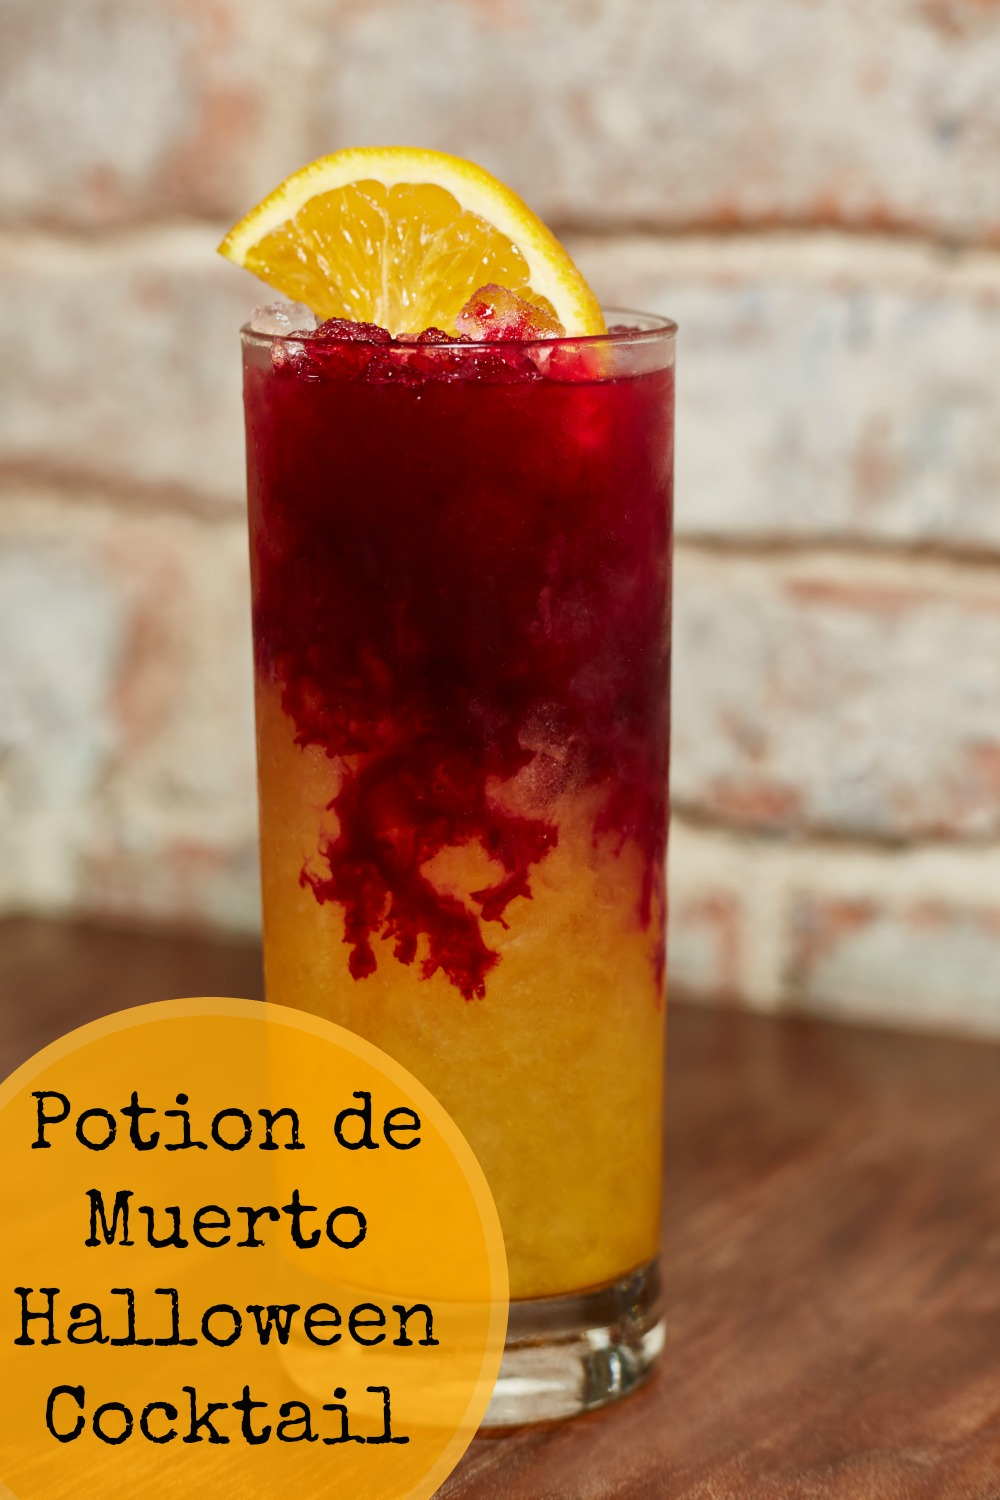 Cocktail Halloween Potion De Muerto Halloween Cocktail Recipe